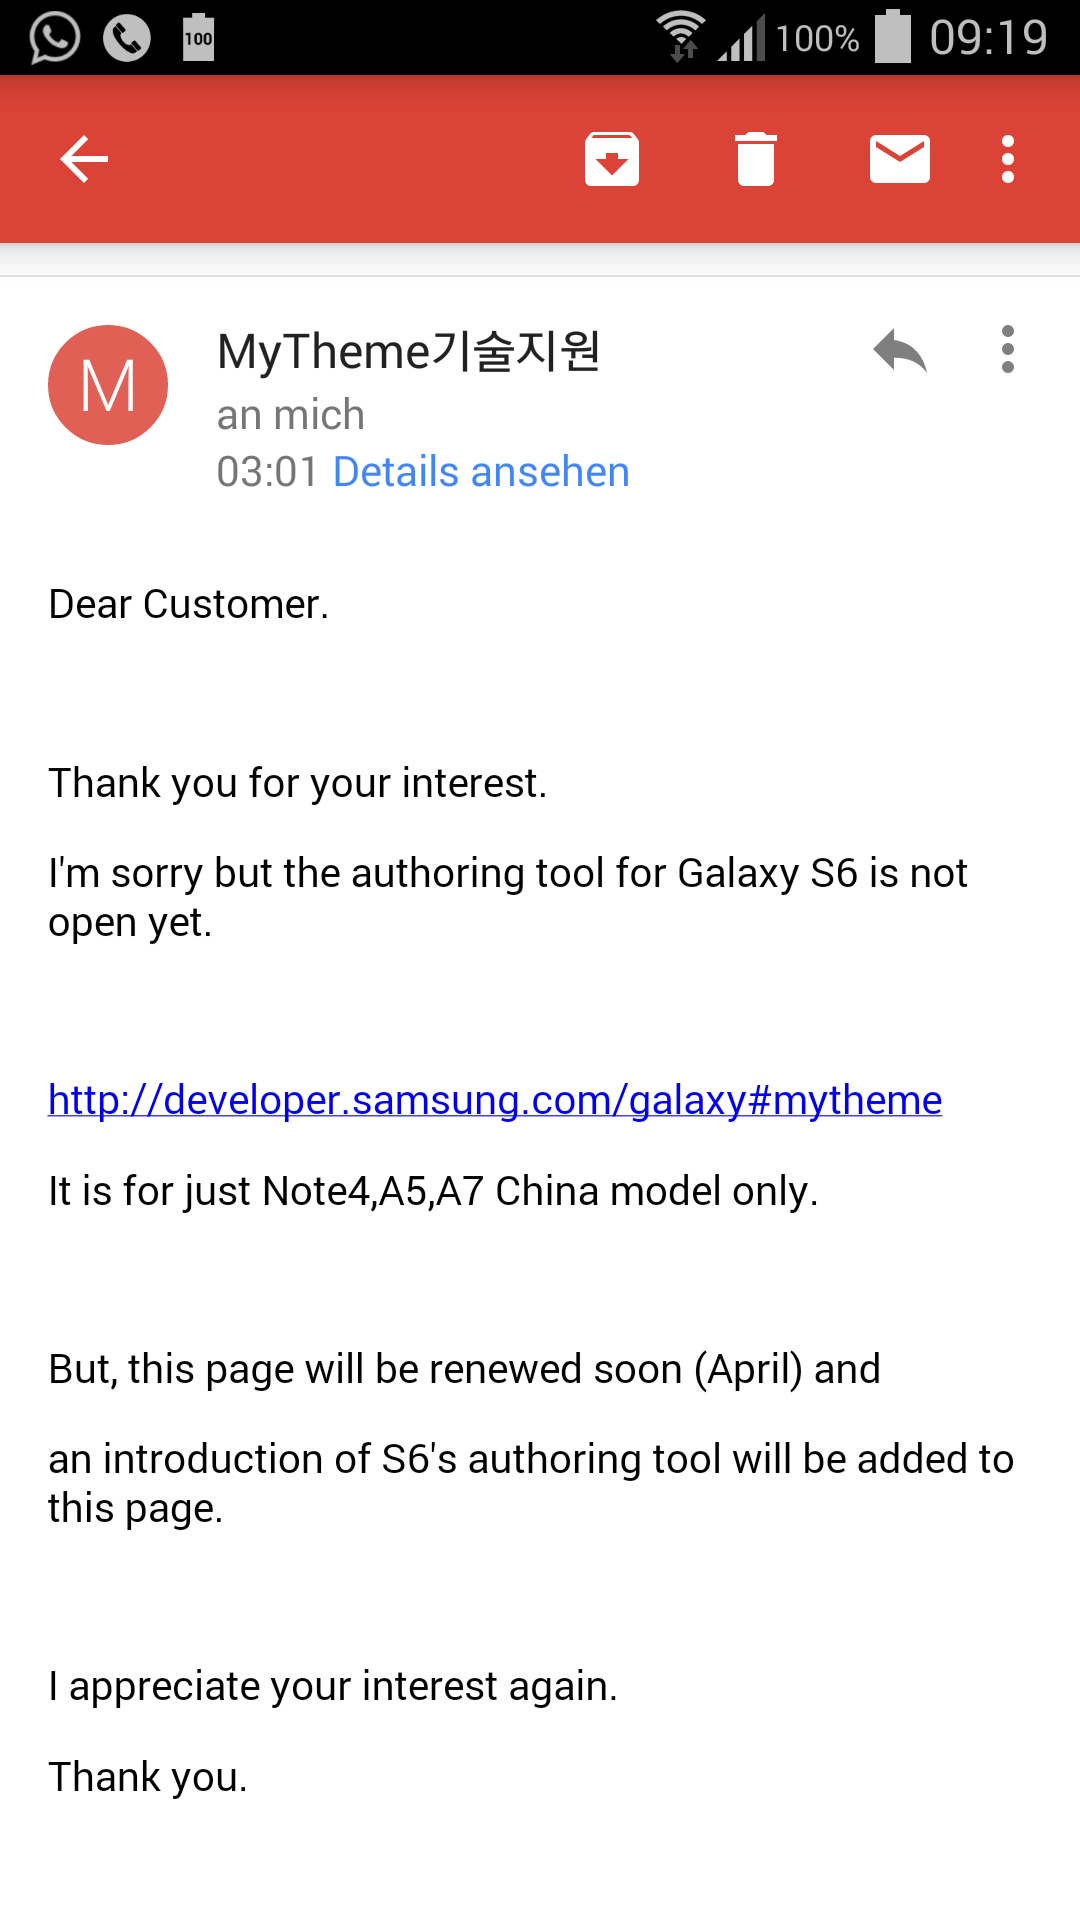 Samsung will release a theming tool for Galaxy S6 sometime in April